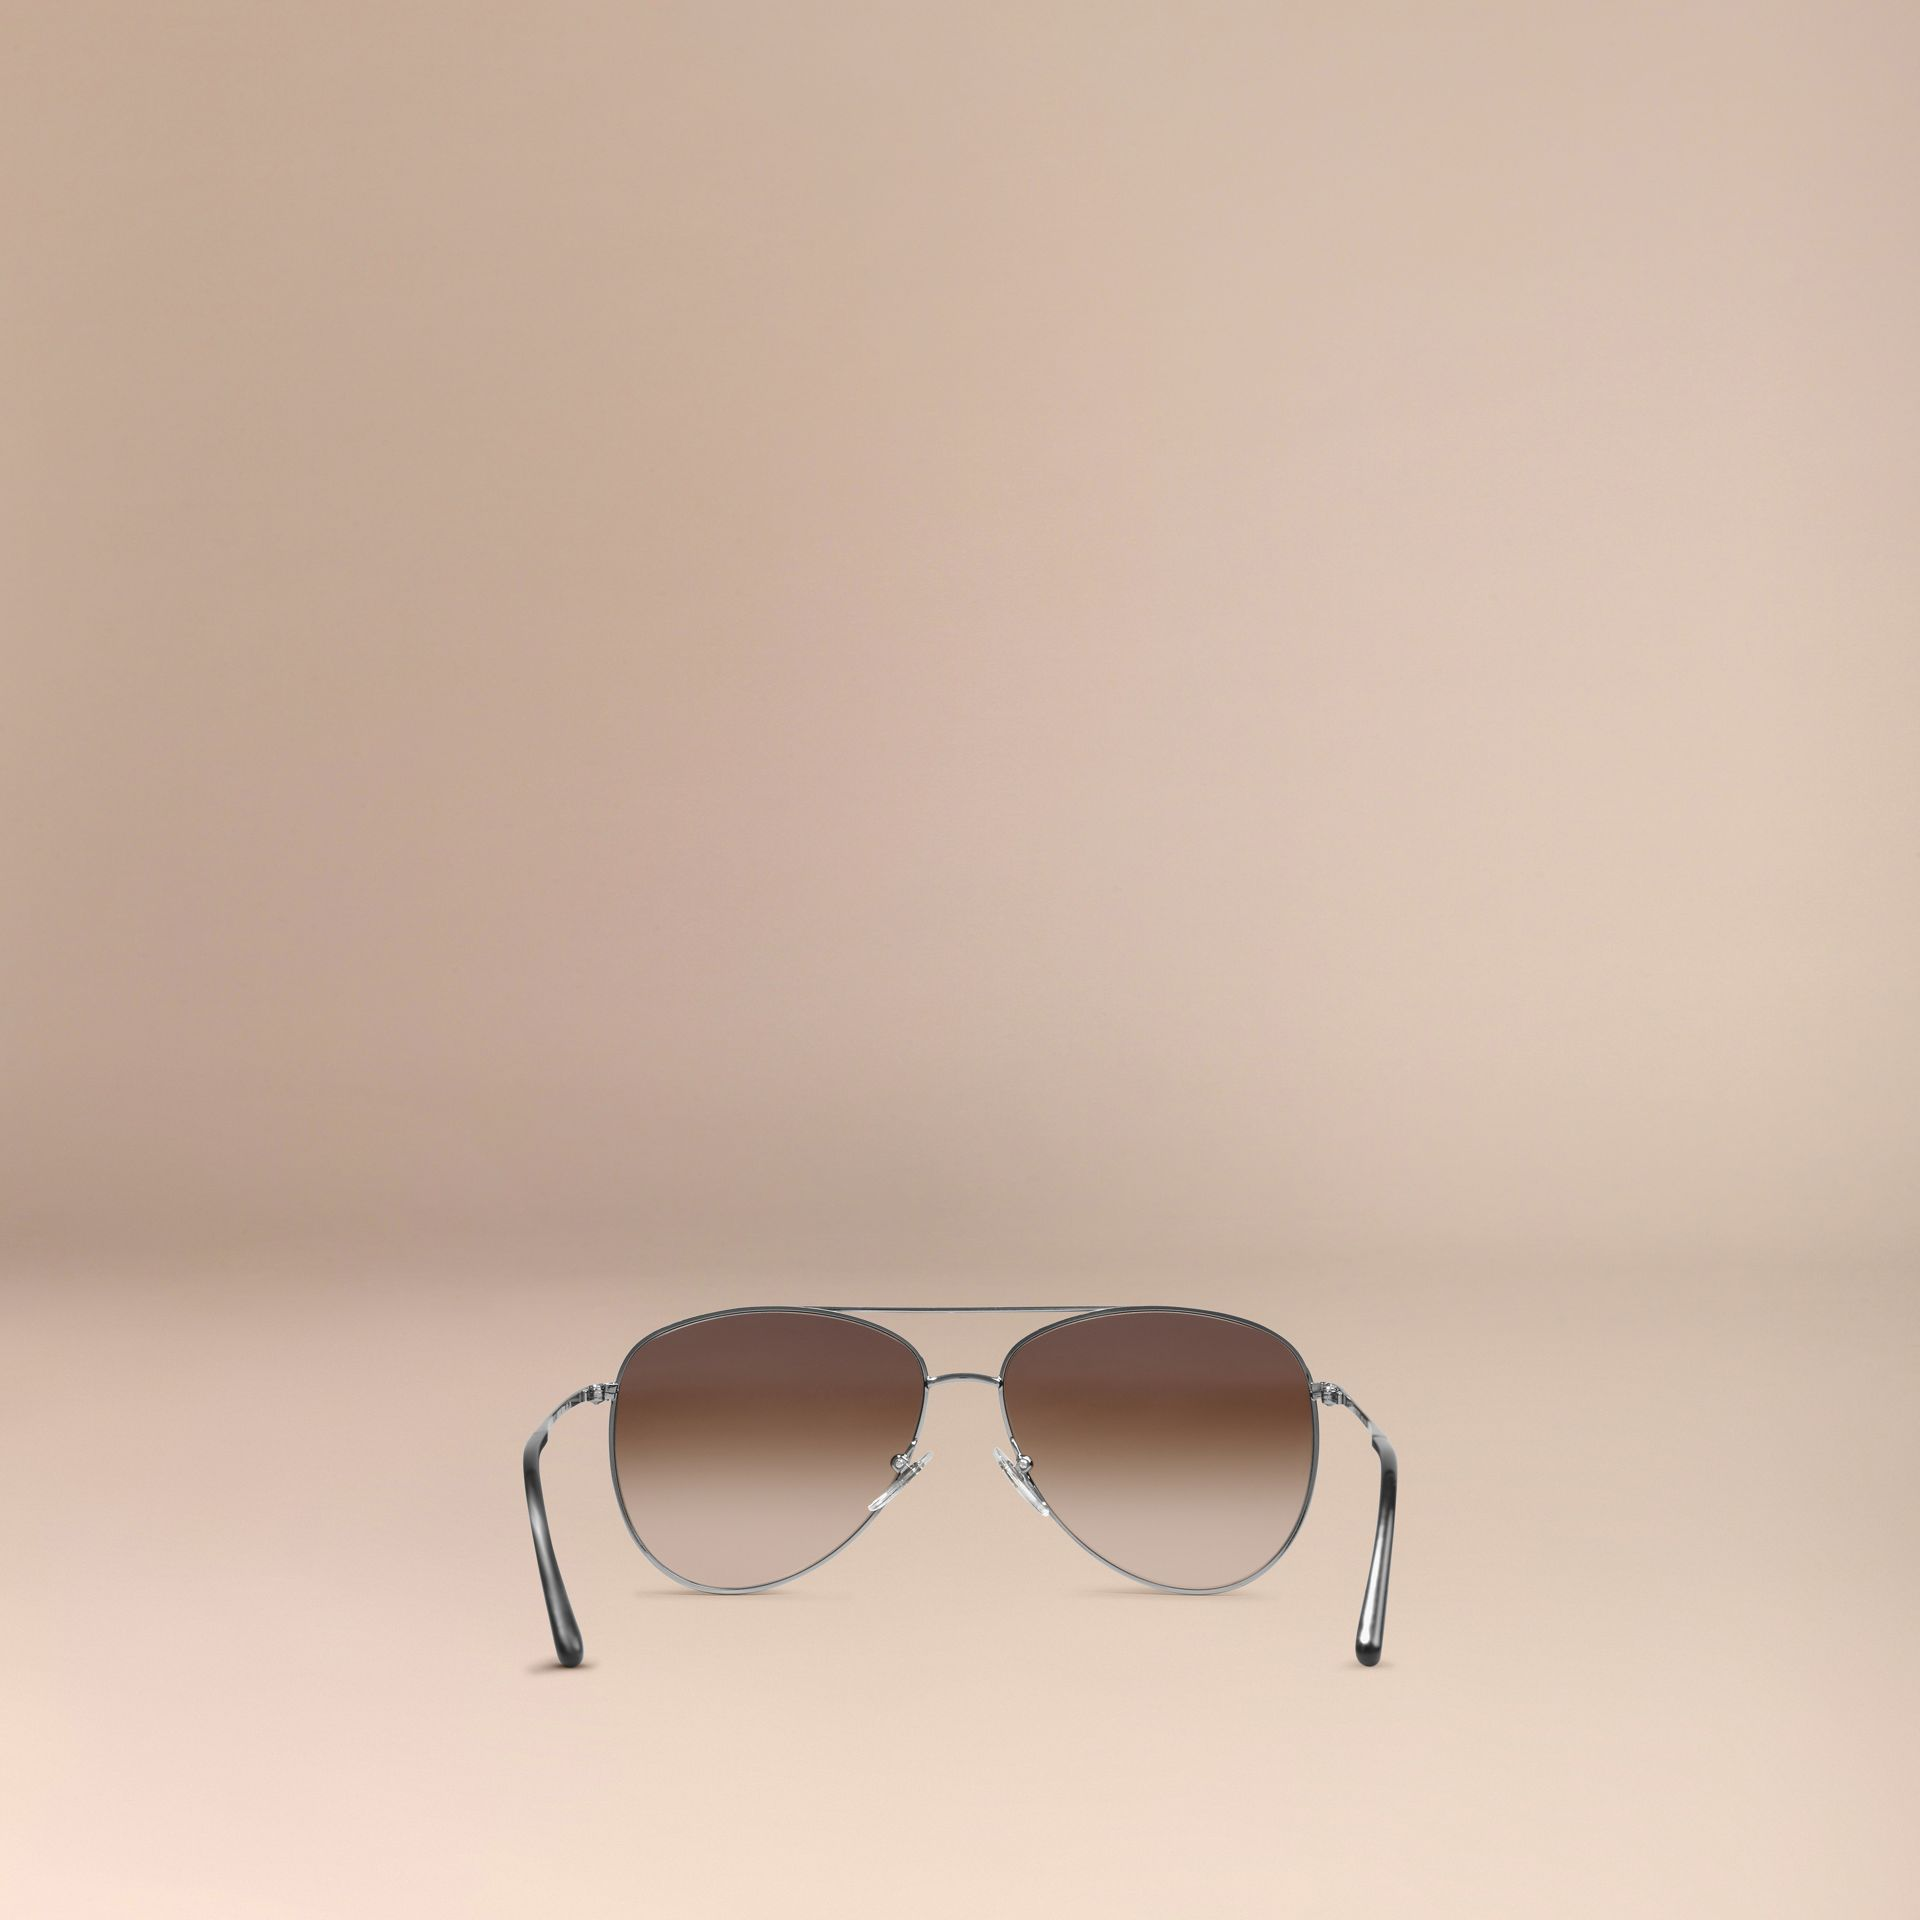 Nickel Check Arm Aviator Sunglasses Nickel - gallery image 3